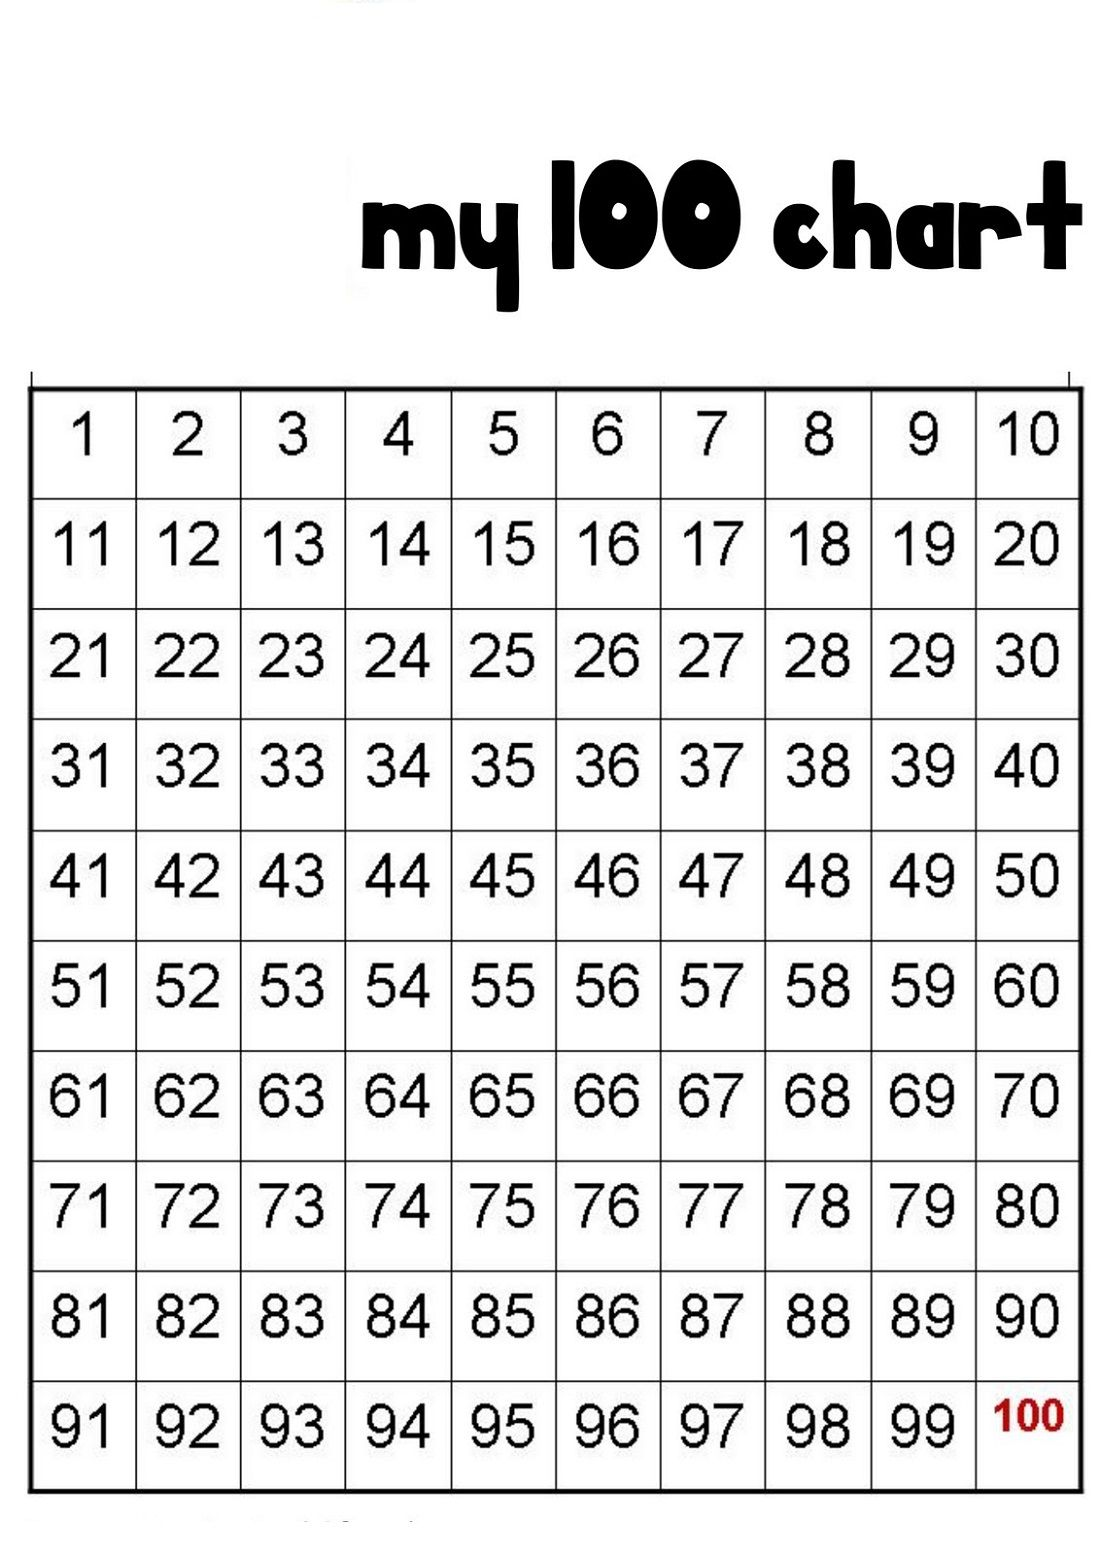 Gorgeous image inside 1 100 chart printable